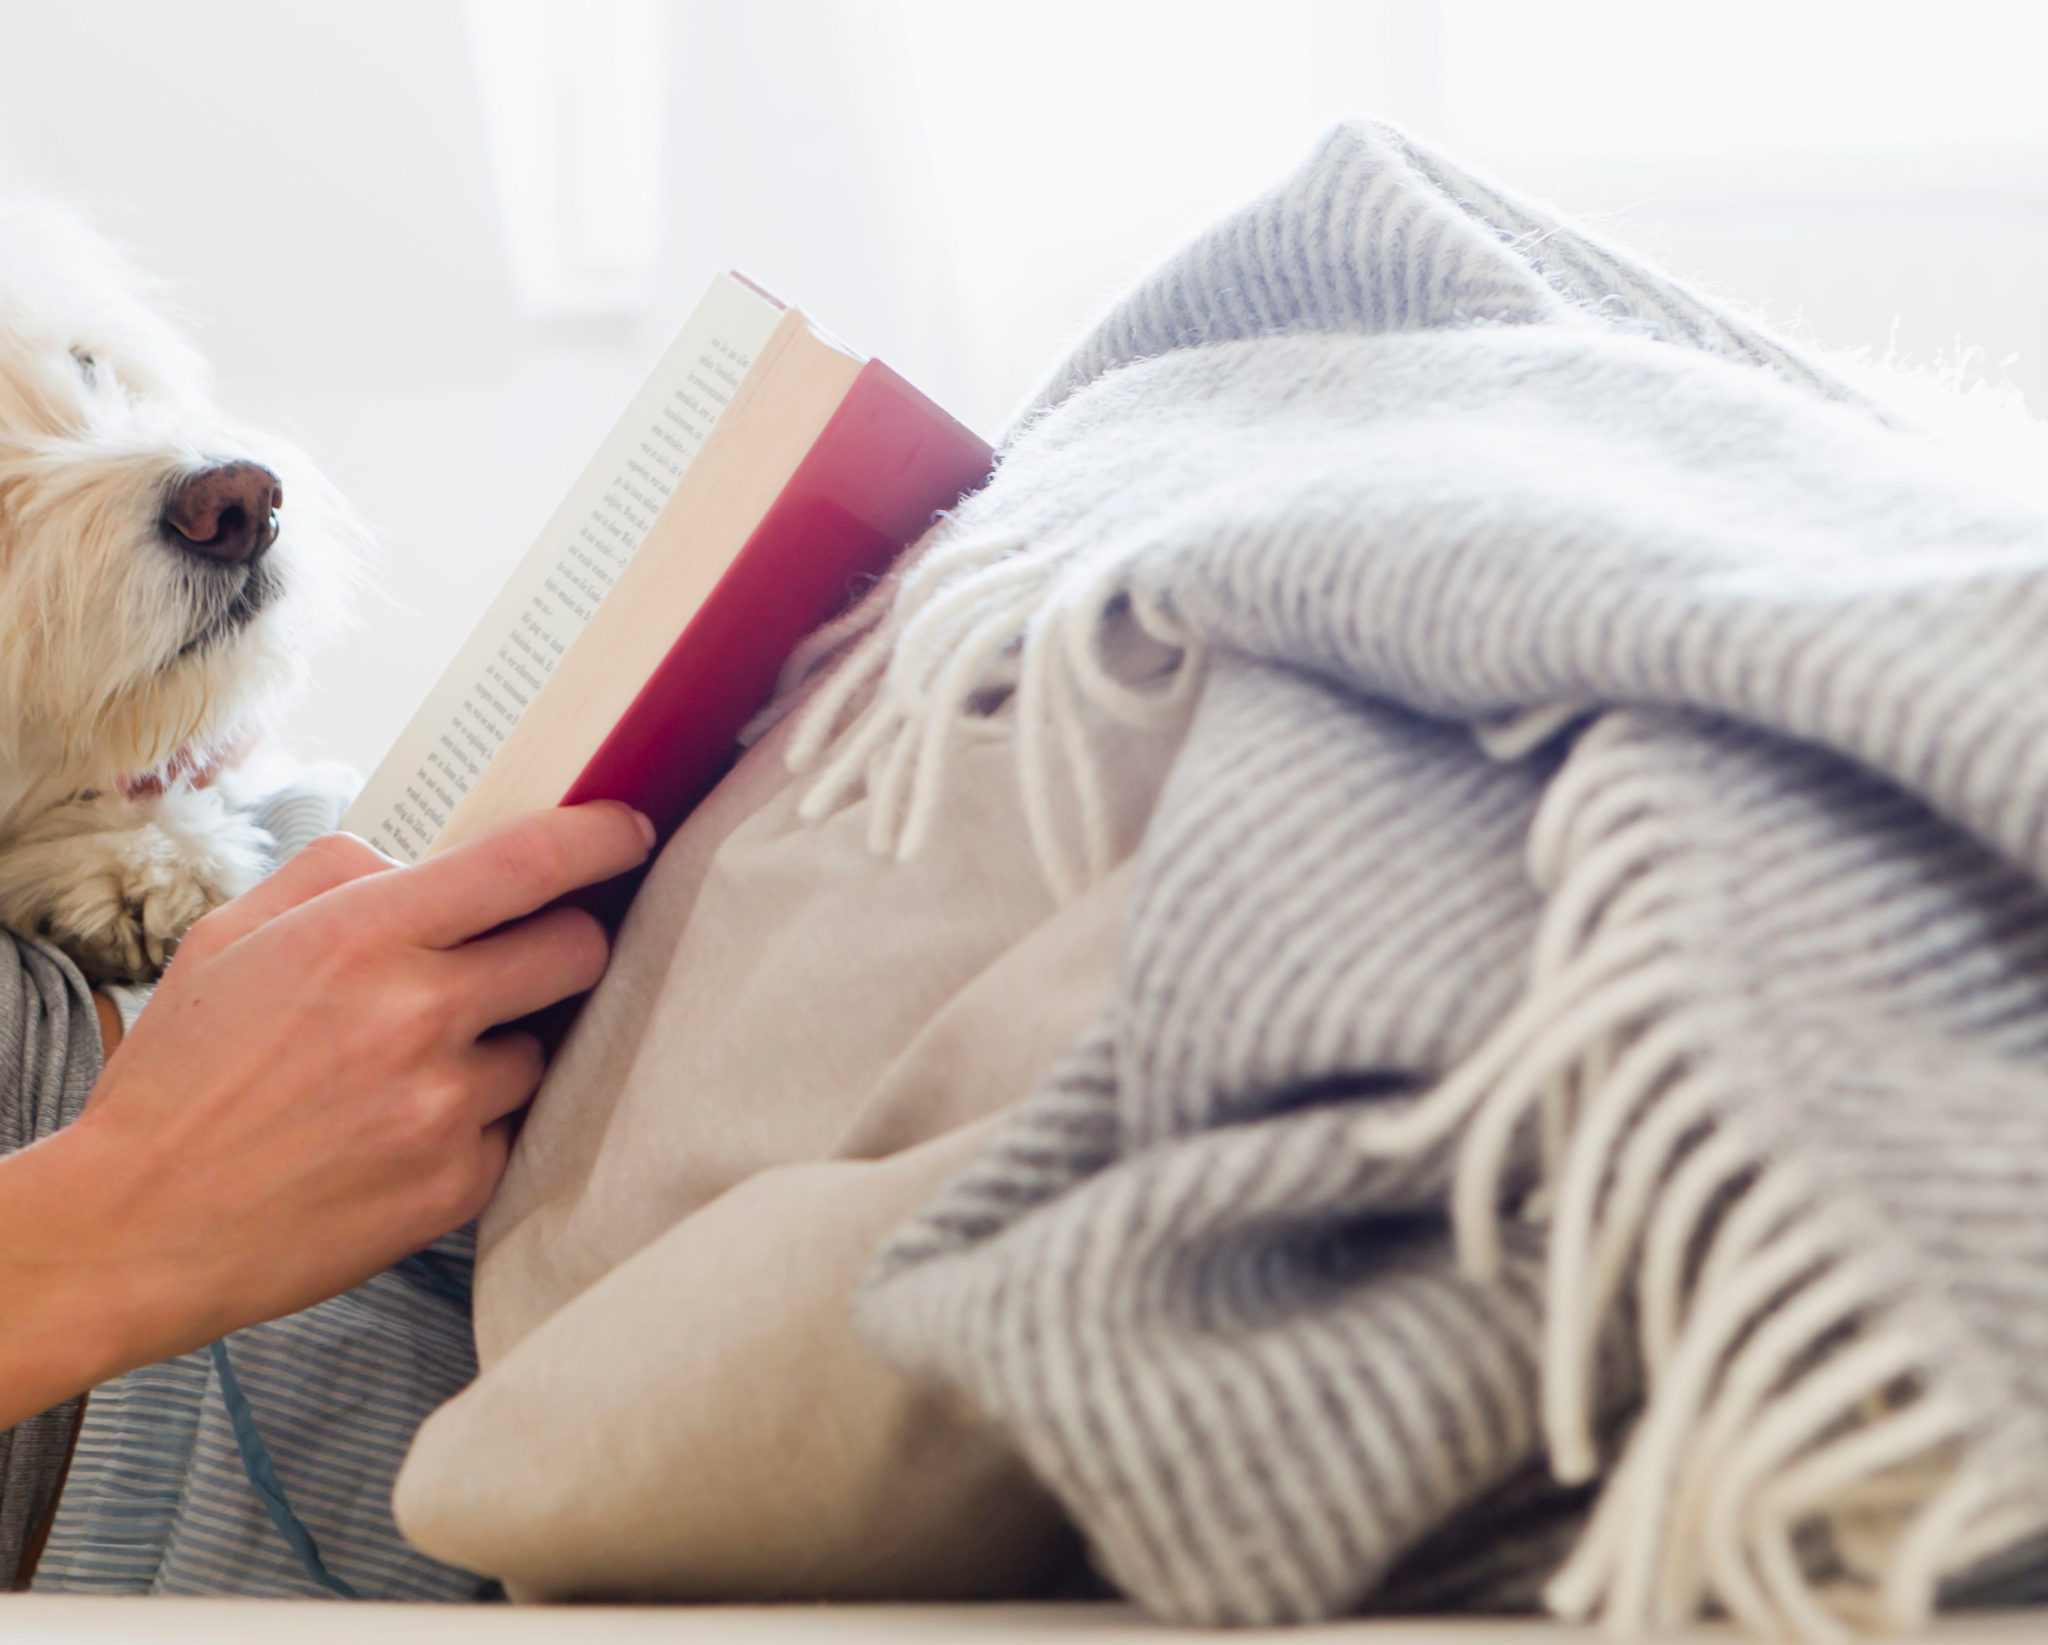 snuggle with a dog and a book to get through winter